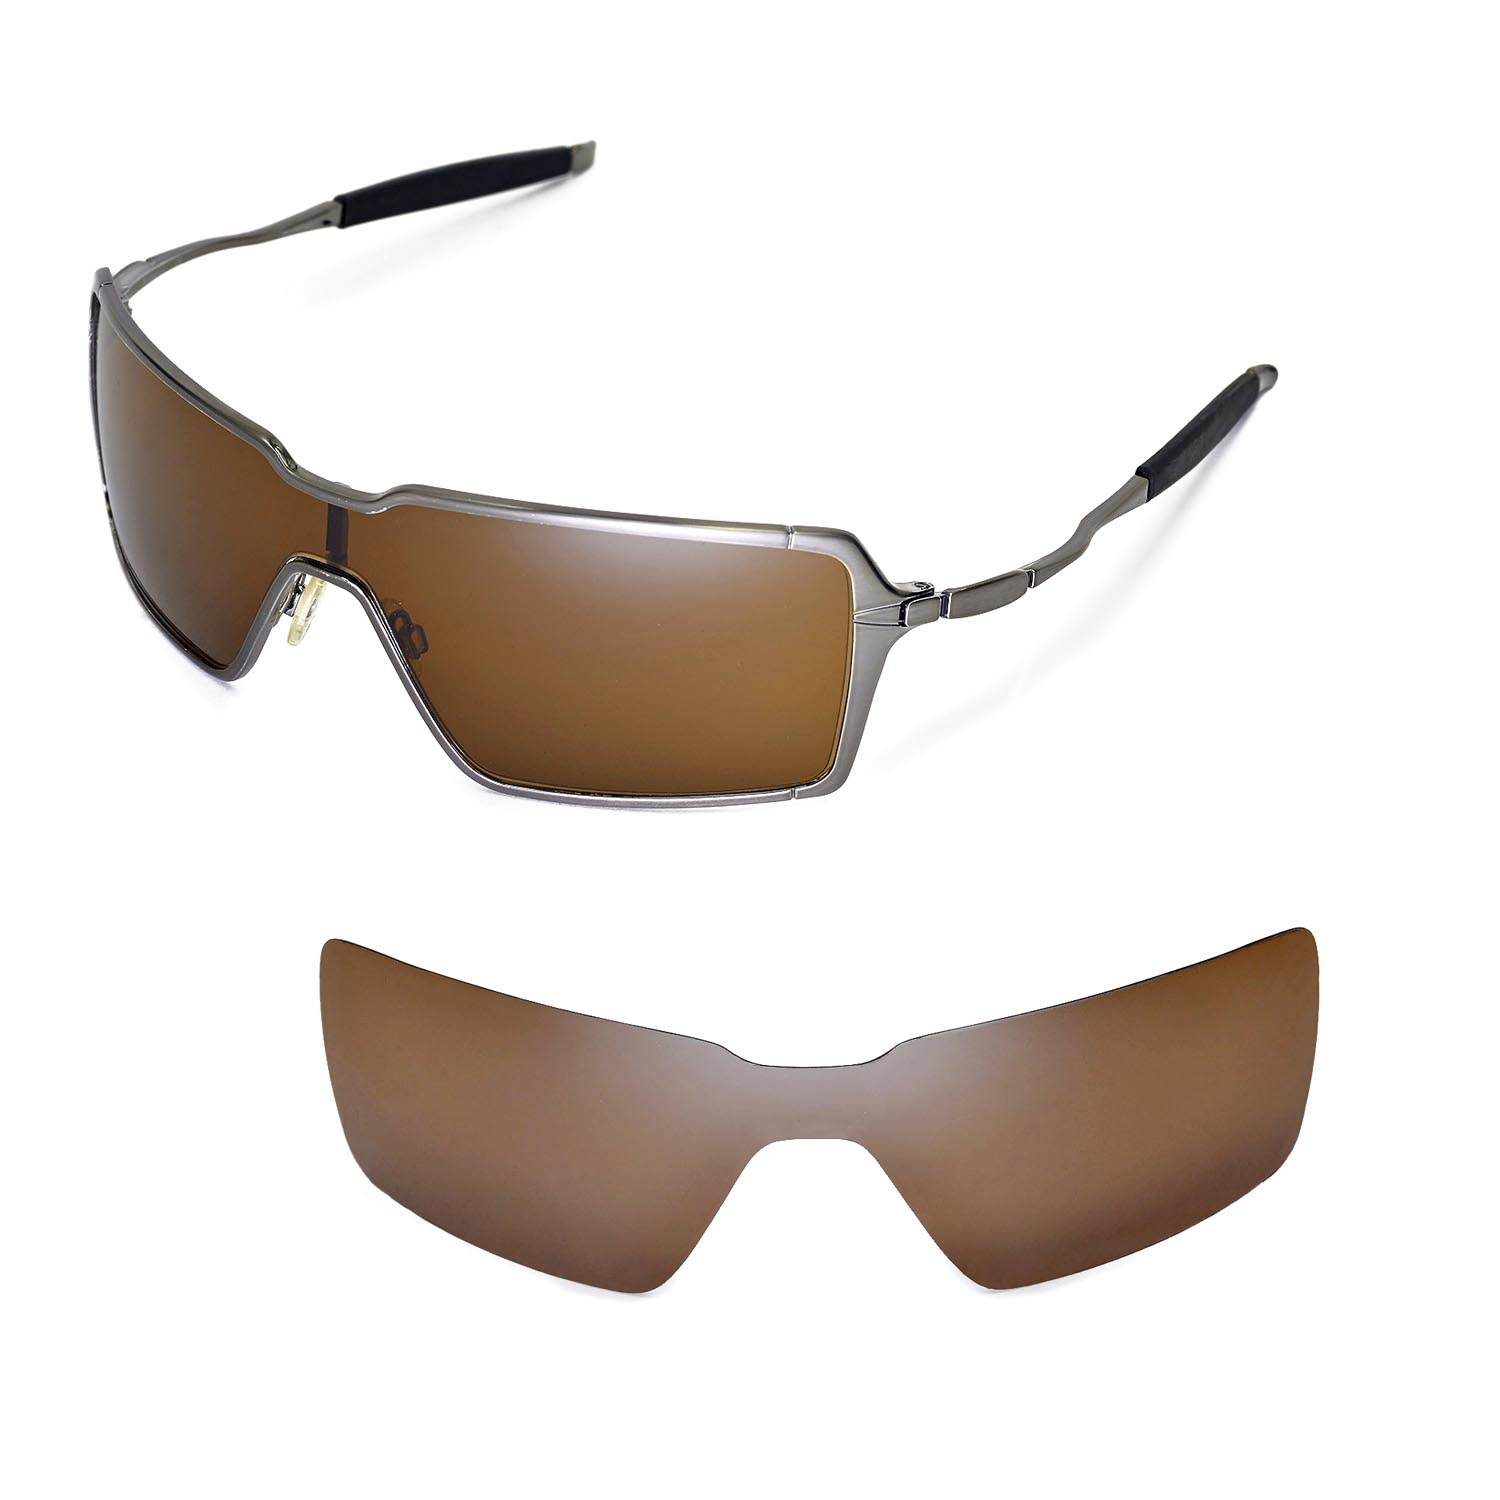 82c11513105 Details about New WL Polarized Brown Replacement Lenses For Oakley  Probation Sunglasses